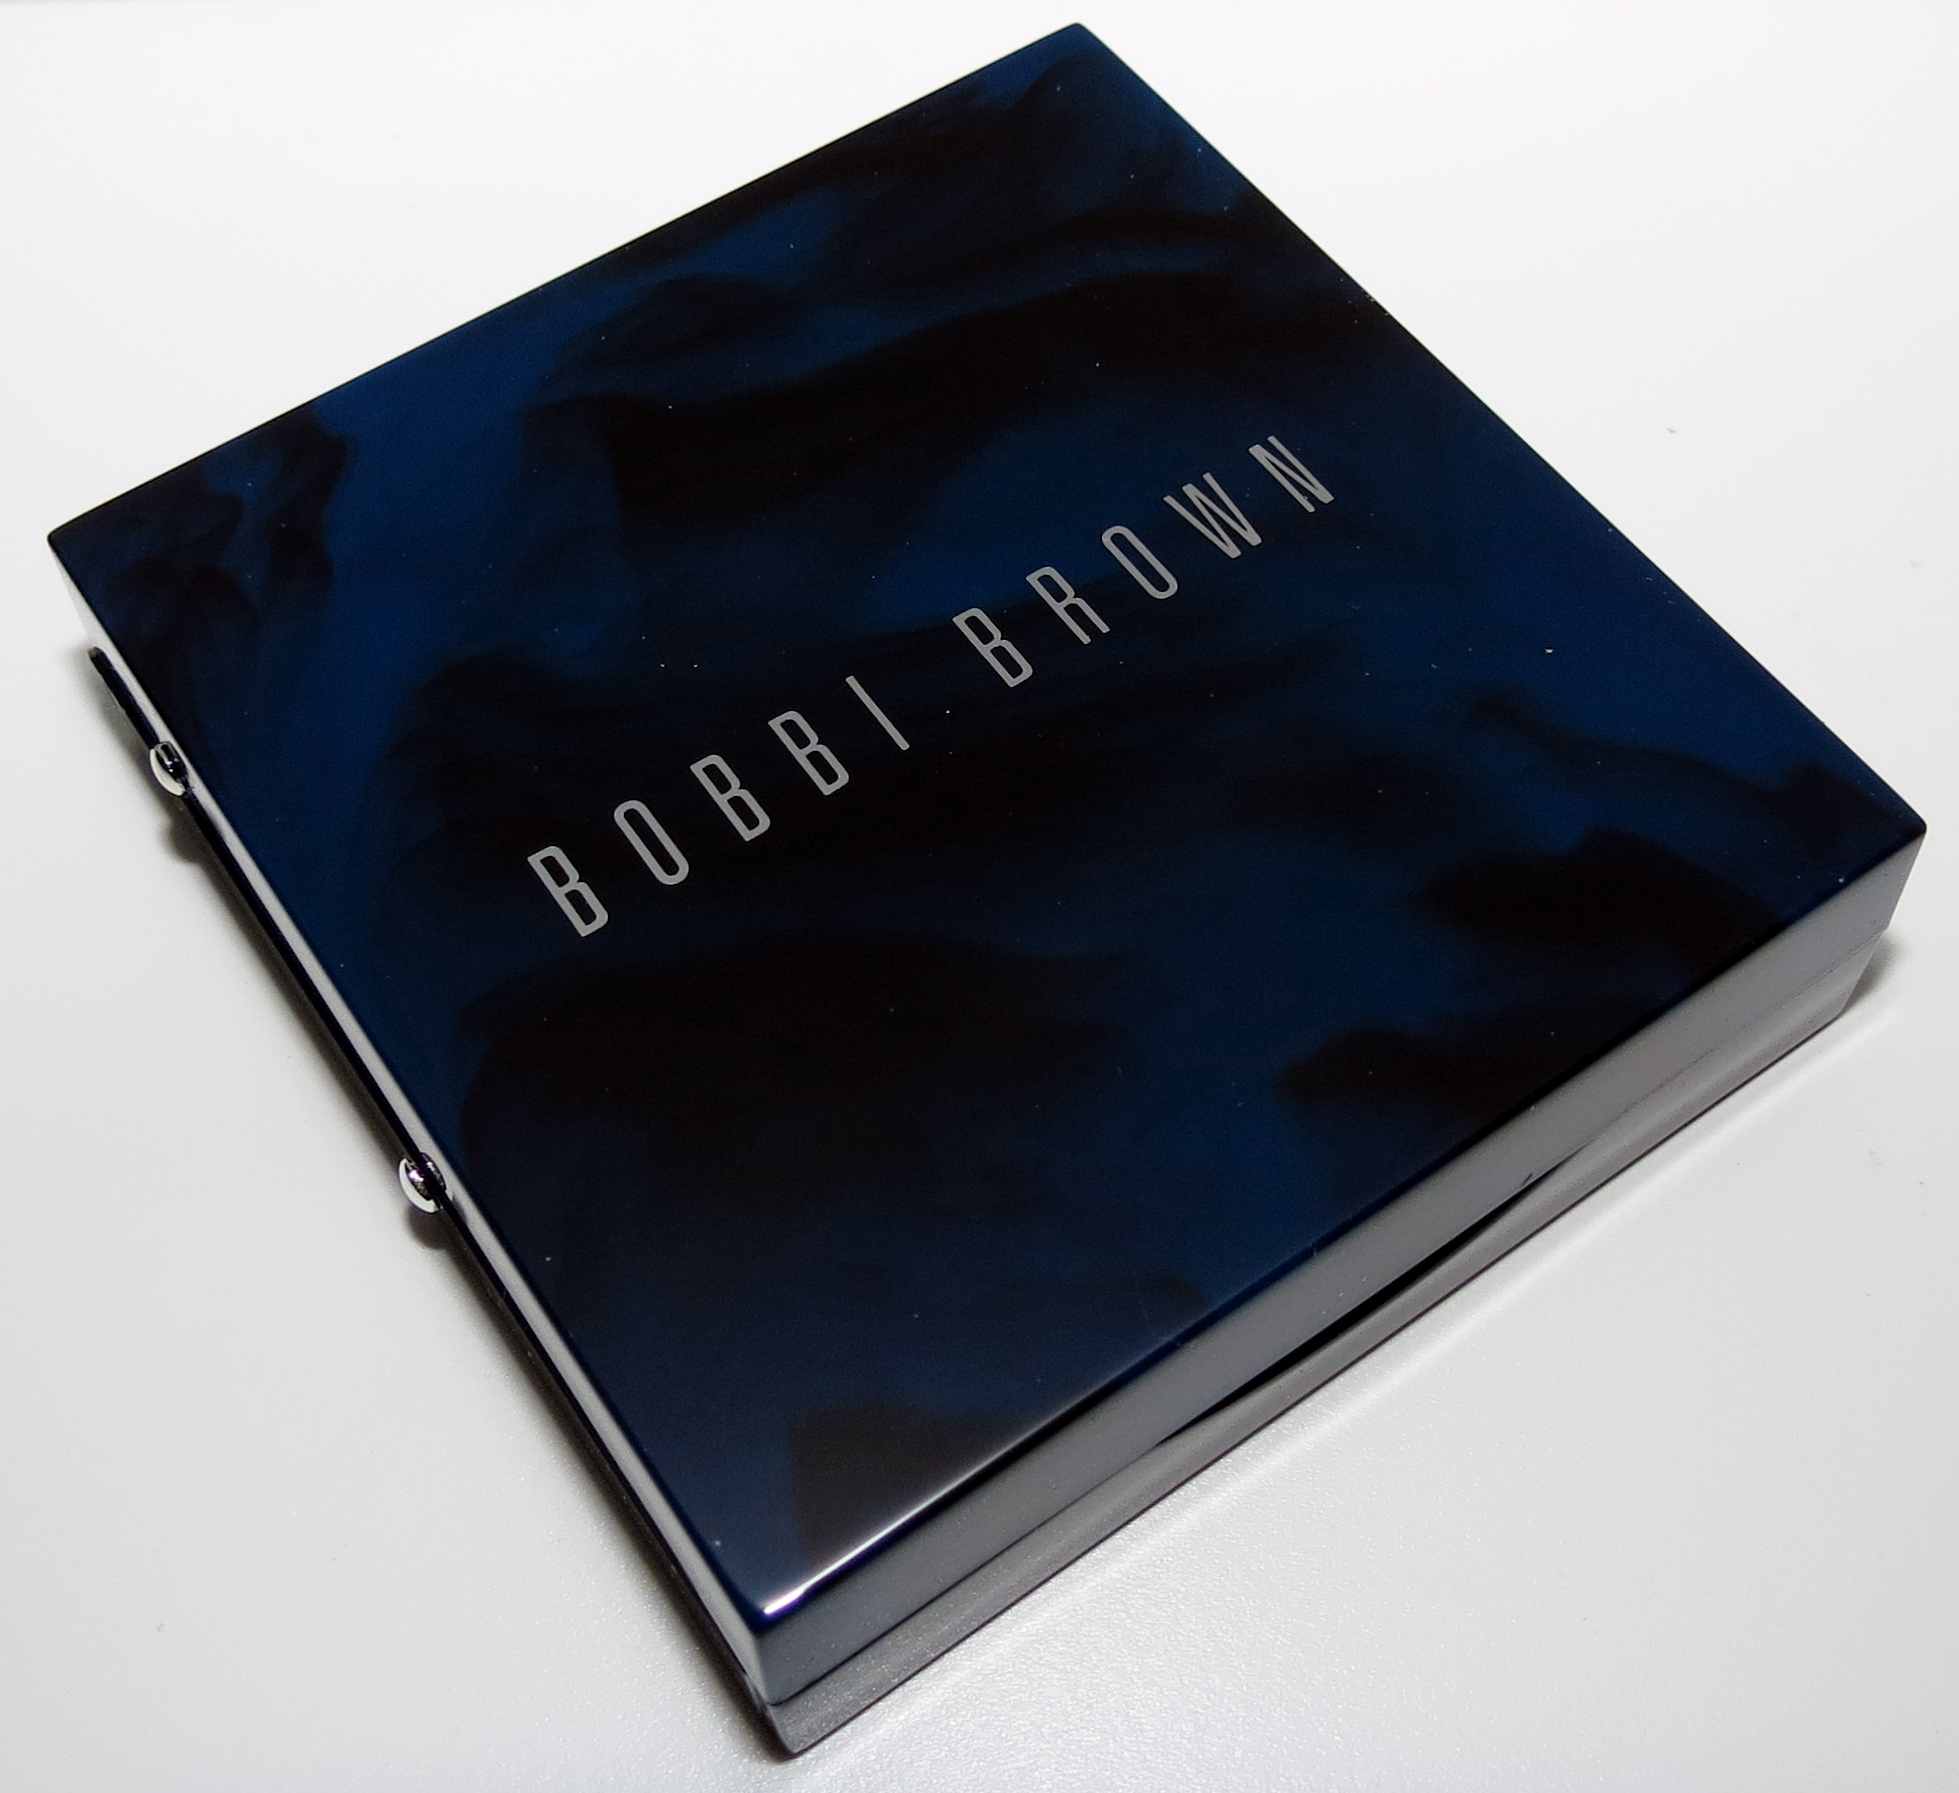 Bobbi Brown Navy  Nude Eye Palette Swatches, Review